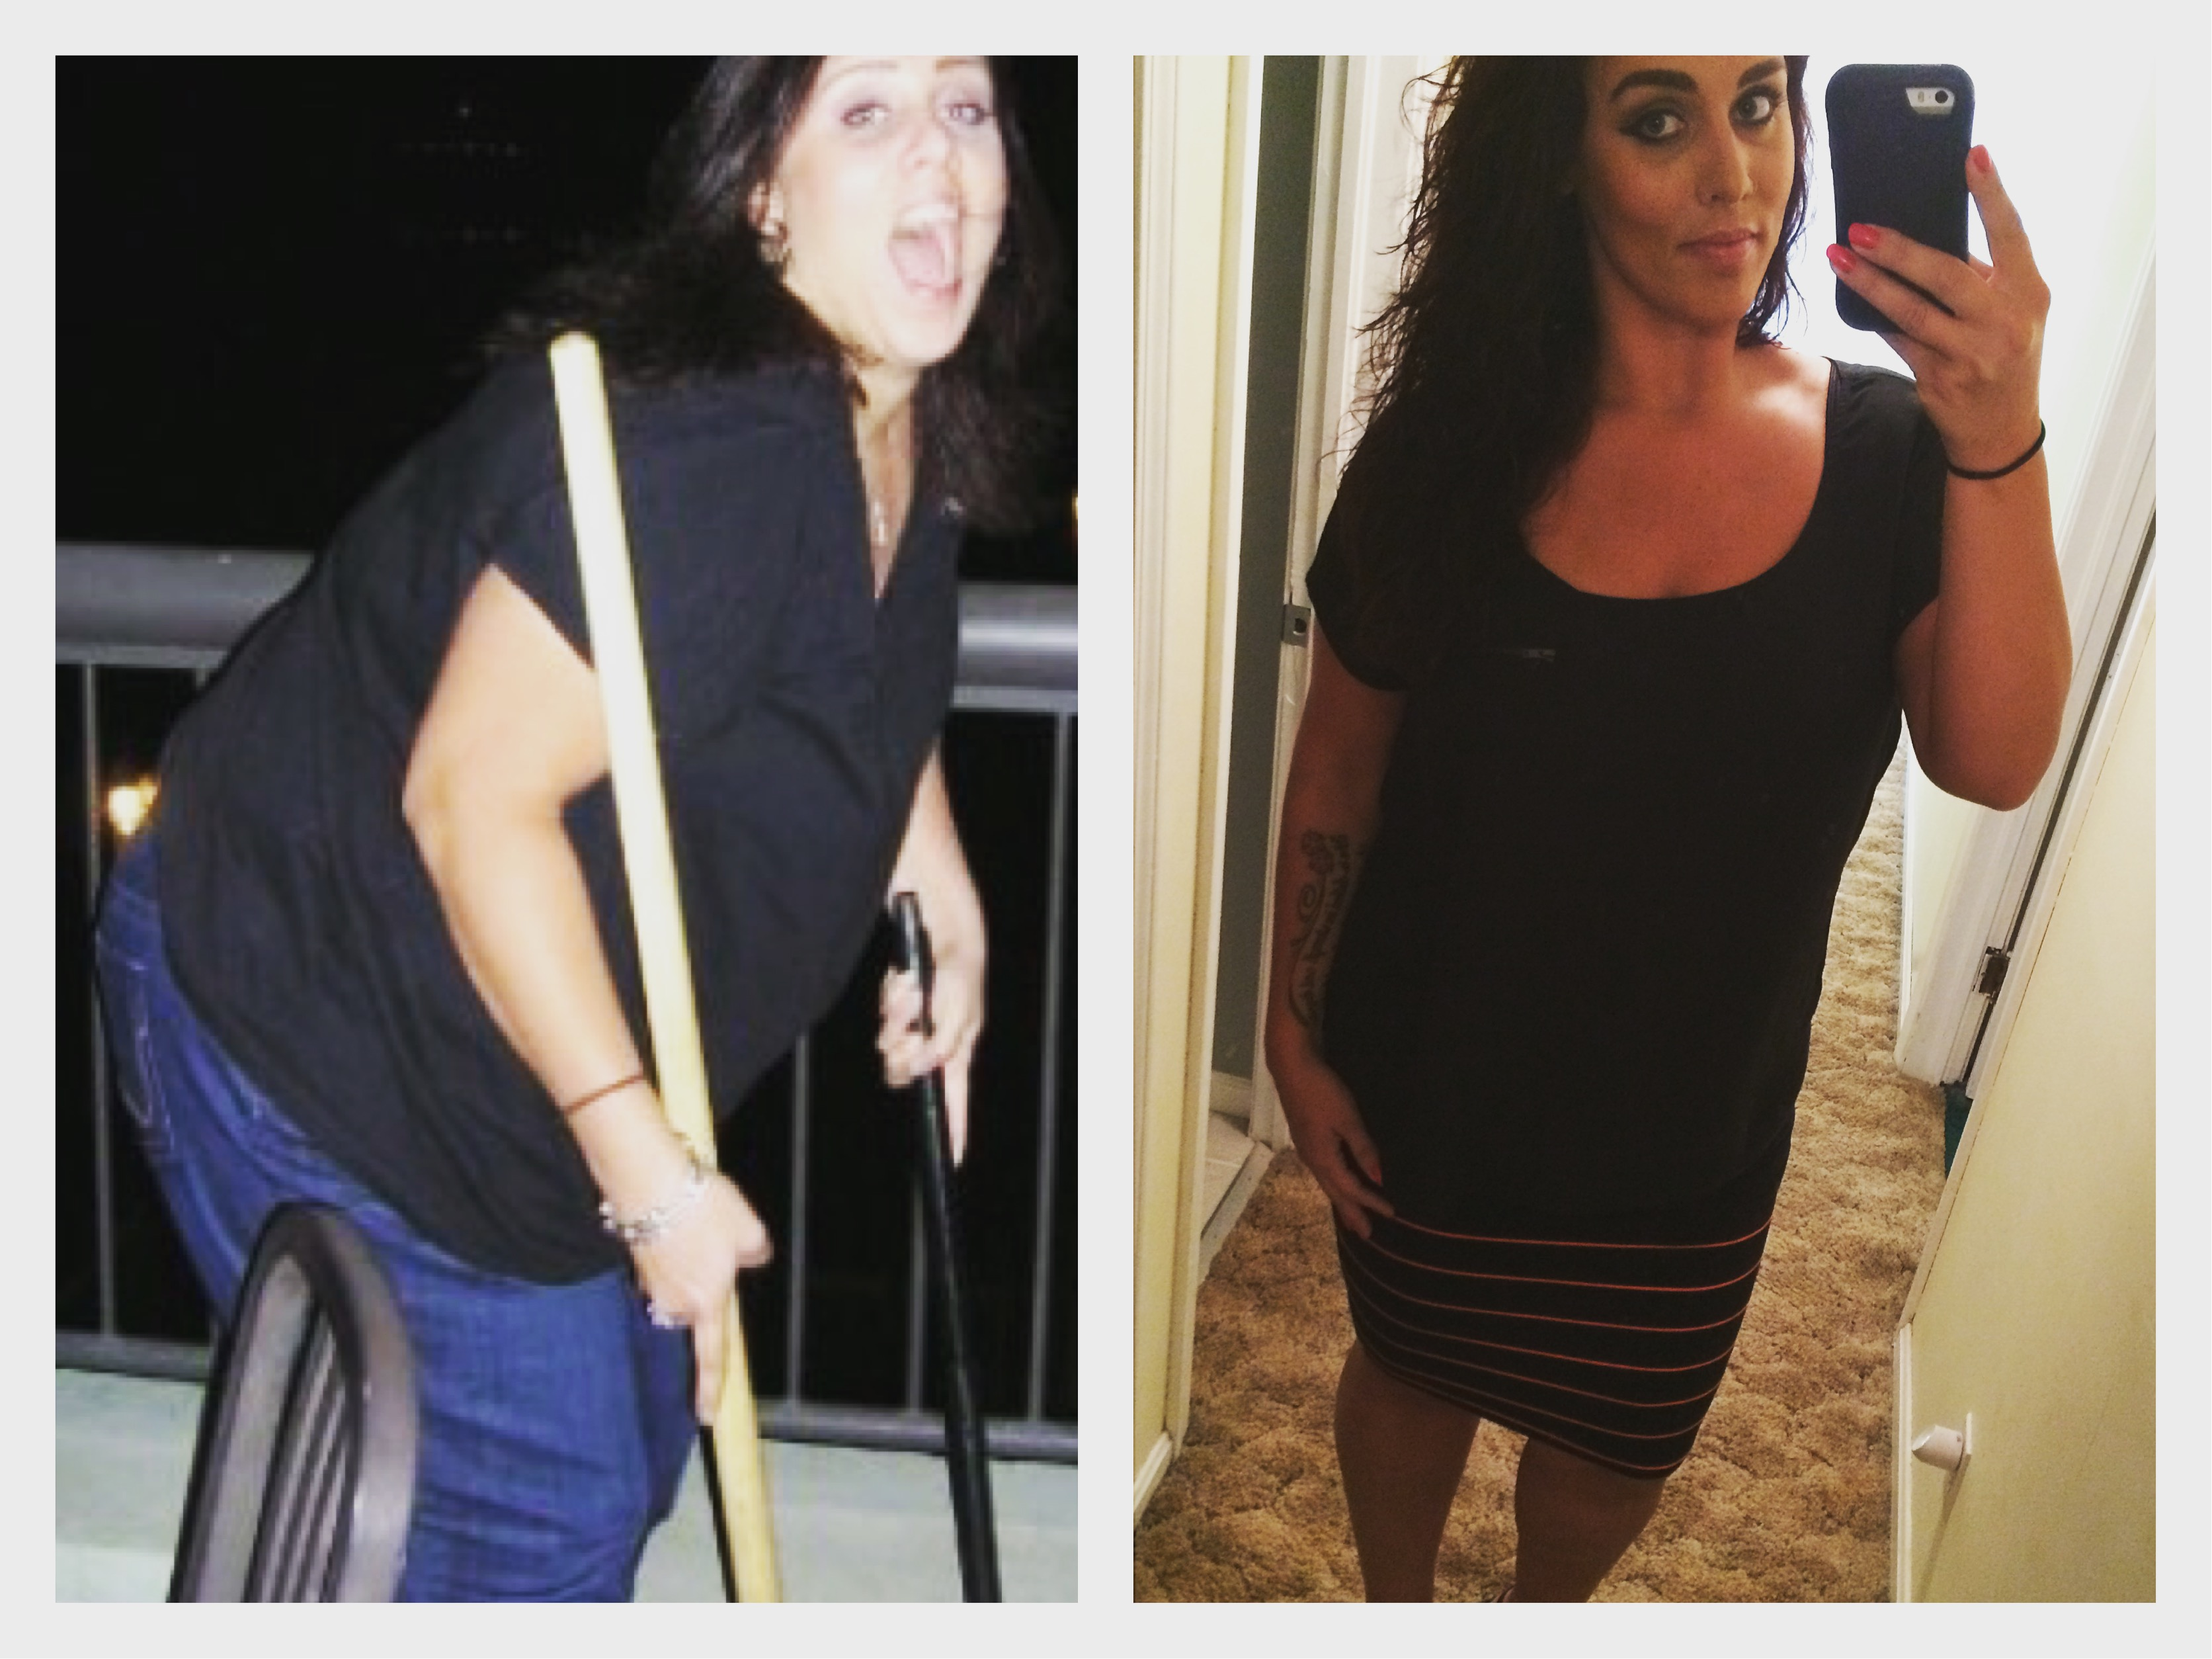 Megan lost 113 pounds! See my before and after weight loss pictures, and read amazing weight loss success stories from real women and their best weight loss diet plans and programs. Motivation to lose weight with walking and inspiration from before and after weightloss pics and photos.